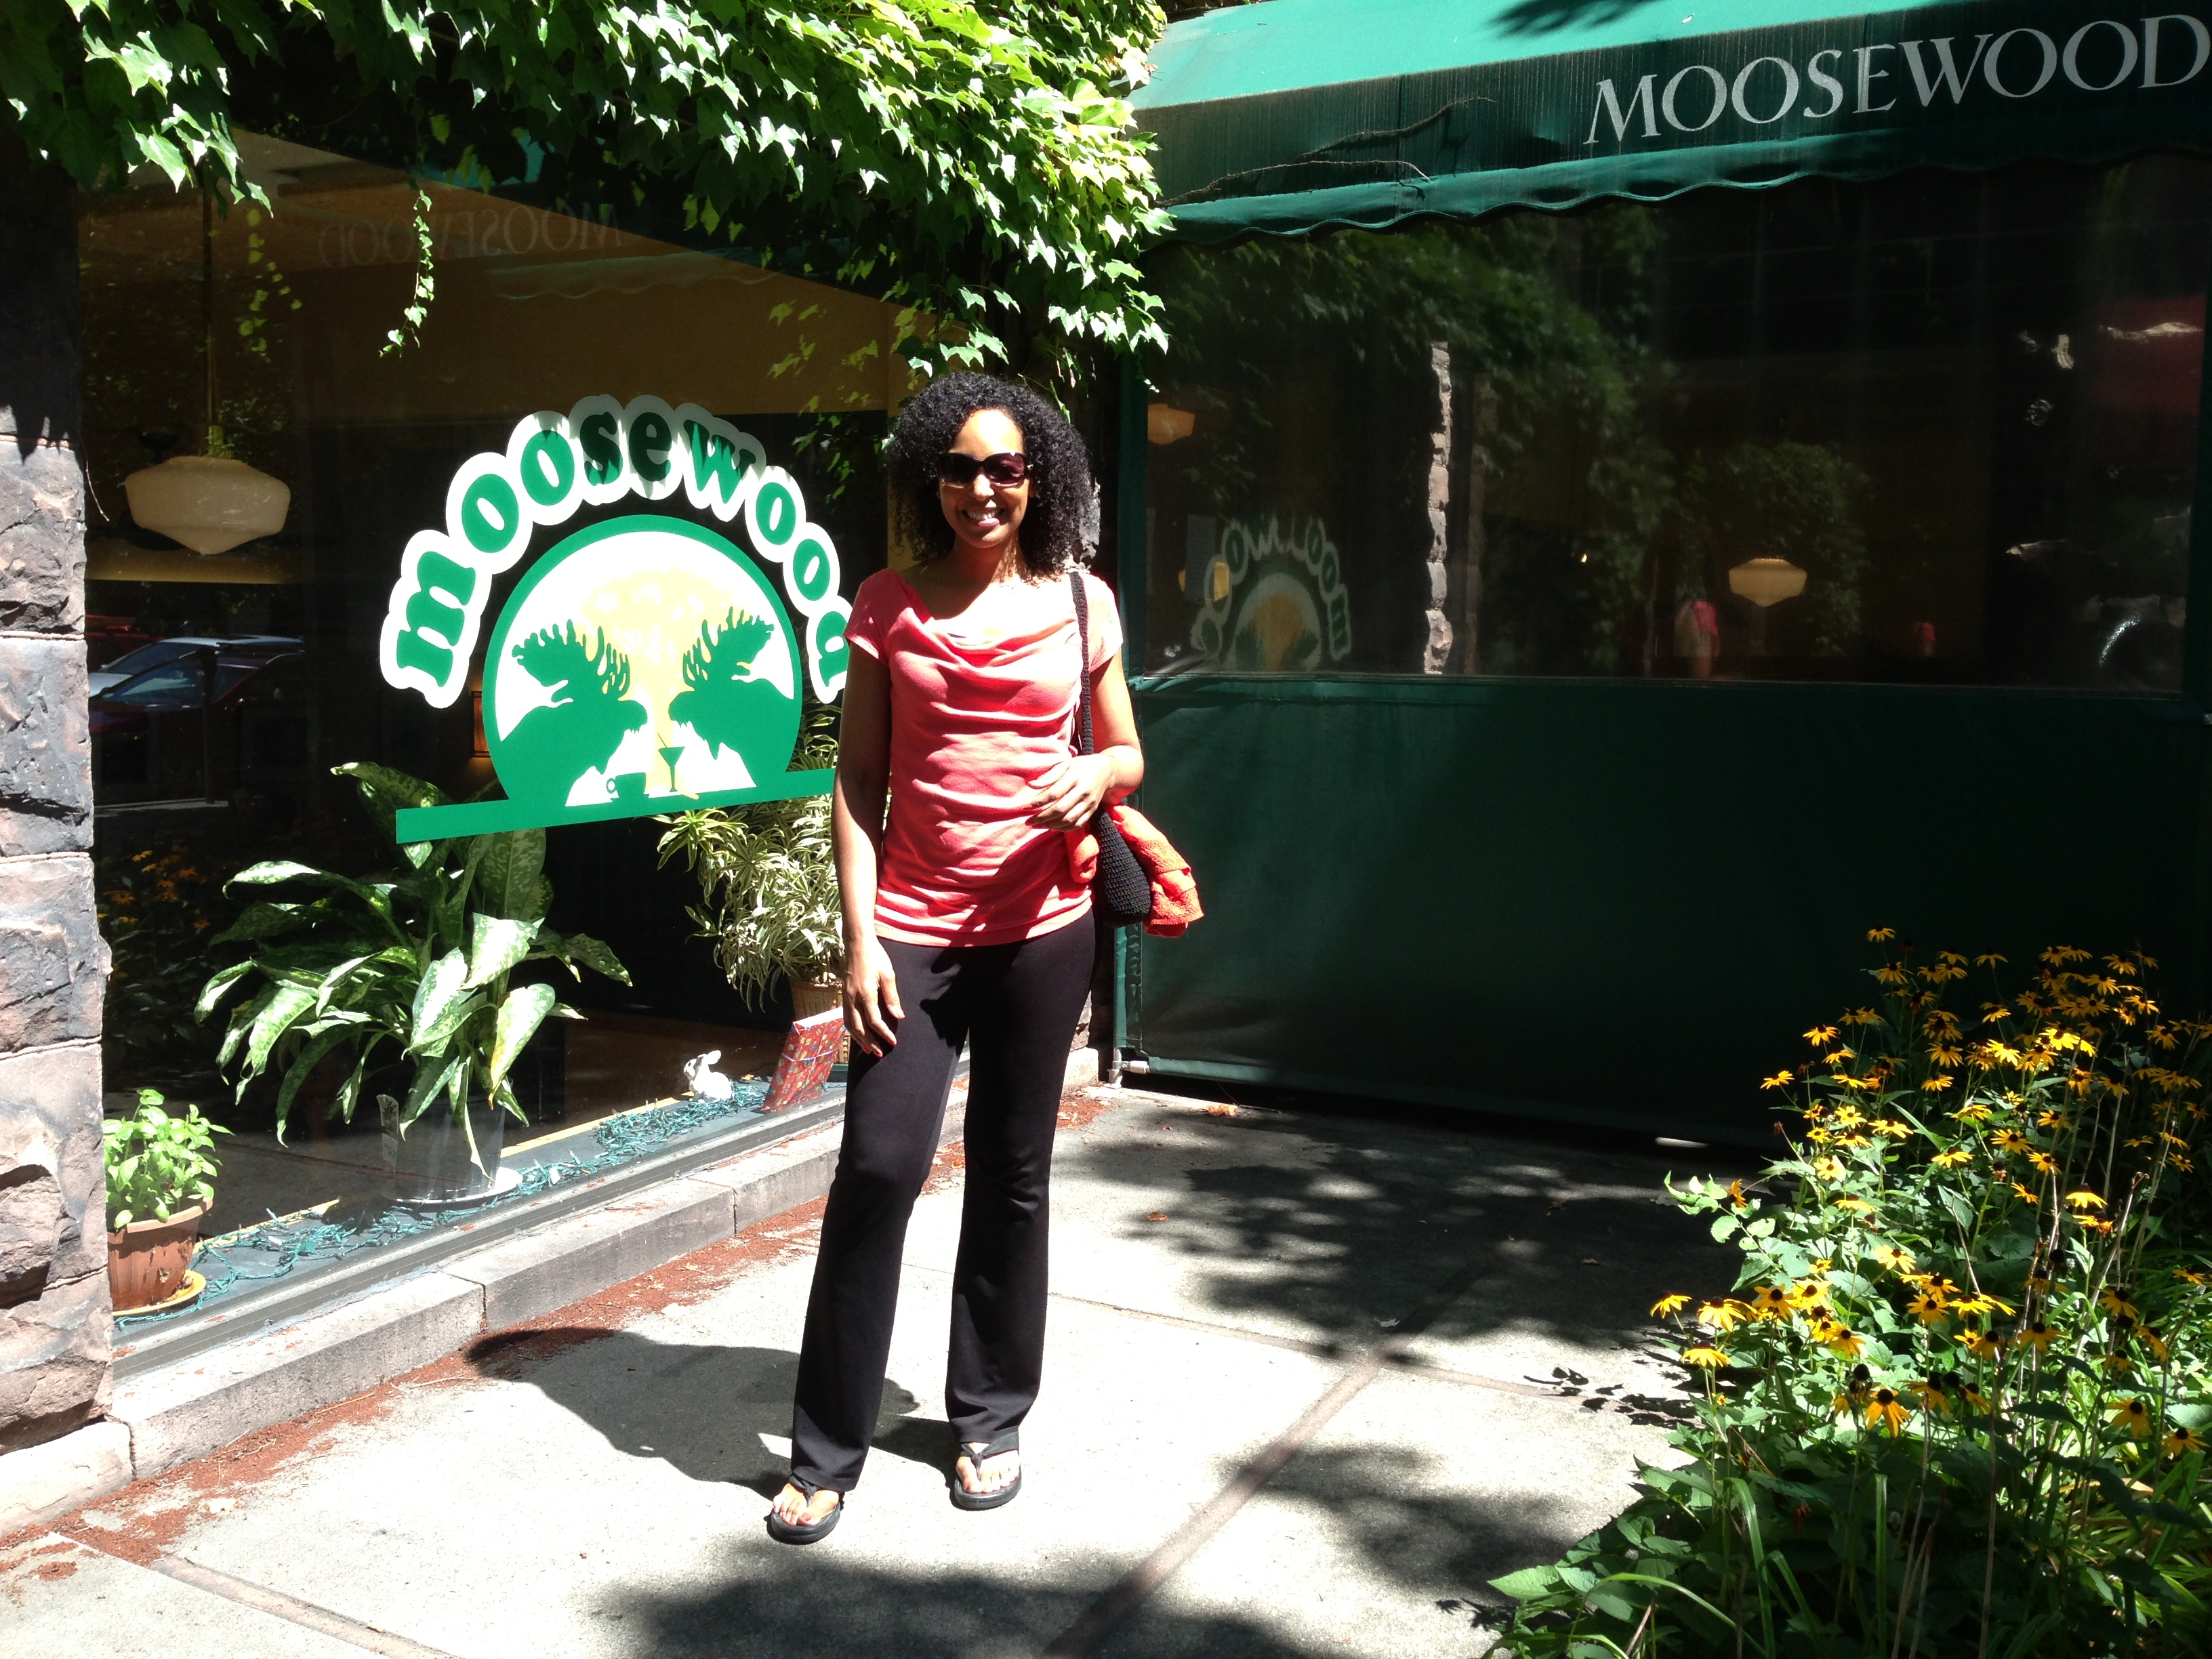 Teresa Kennedy at Moosewood Restaurant in Ithaca, NY